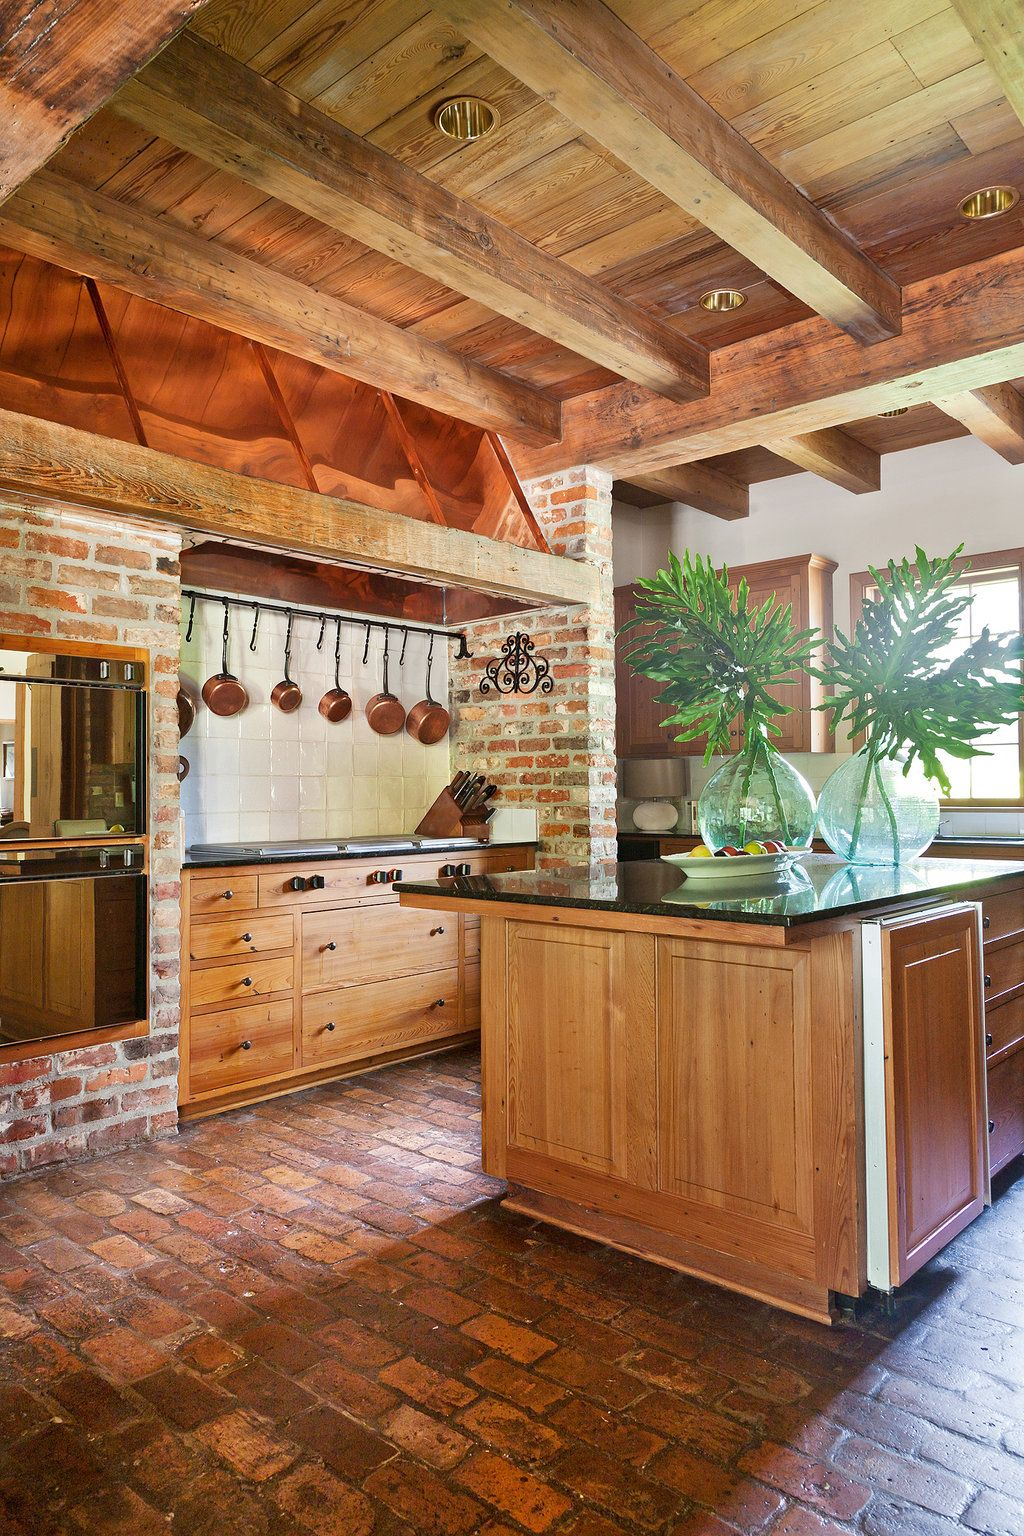 brick floor, reclaimed wood, beams, cabinets | dining